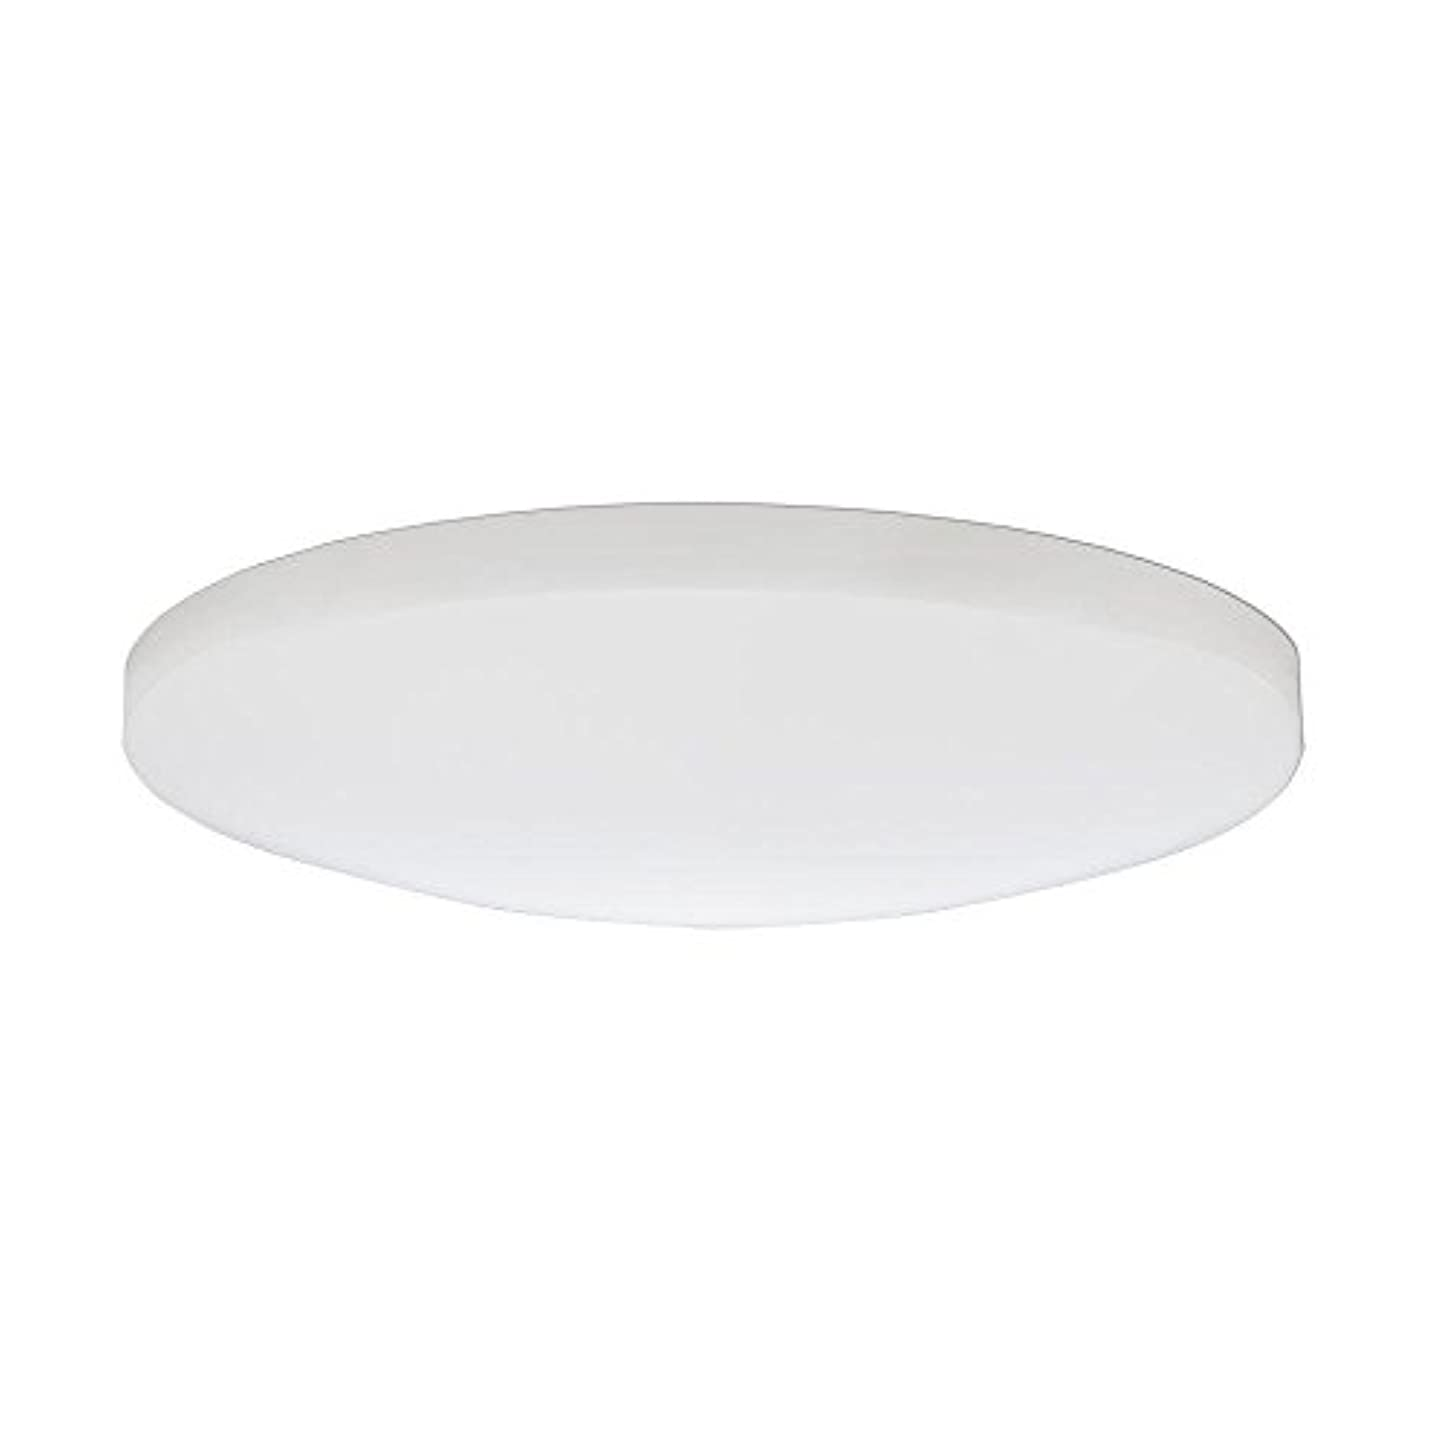 キャロライン未払い前投薬Lithonia Lighting DSATL 13 M4 Replacement Glass Diffuser, 13', White [並行輸入品]